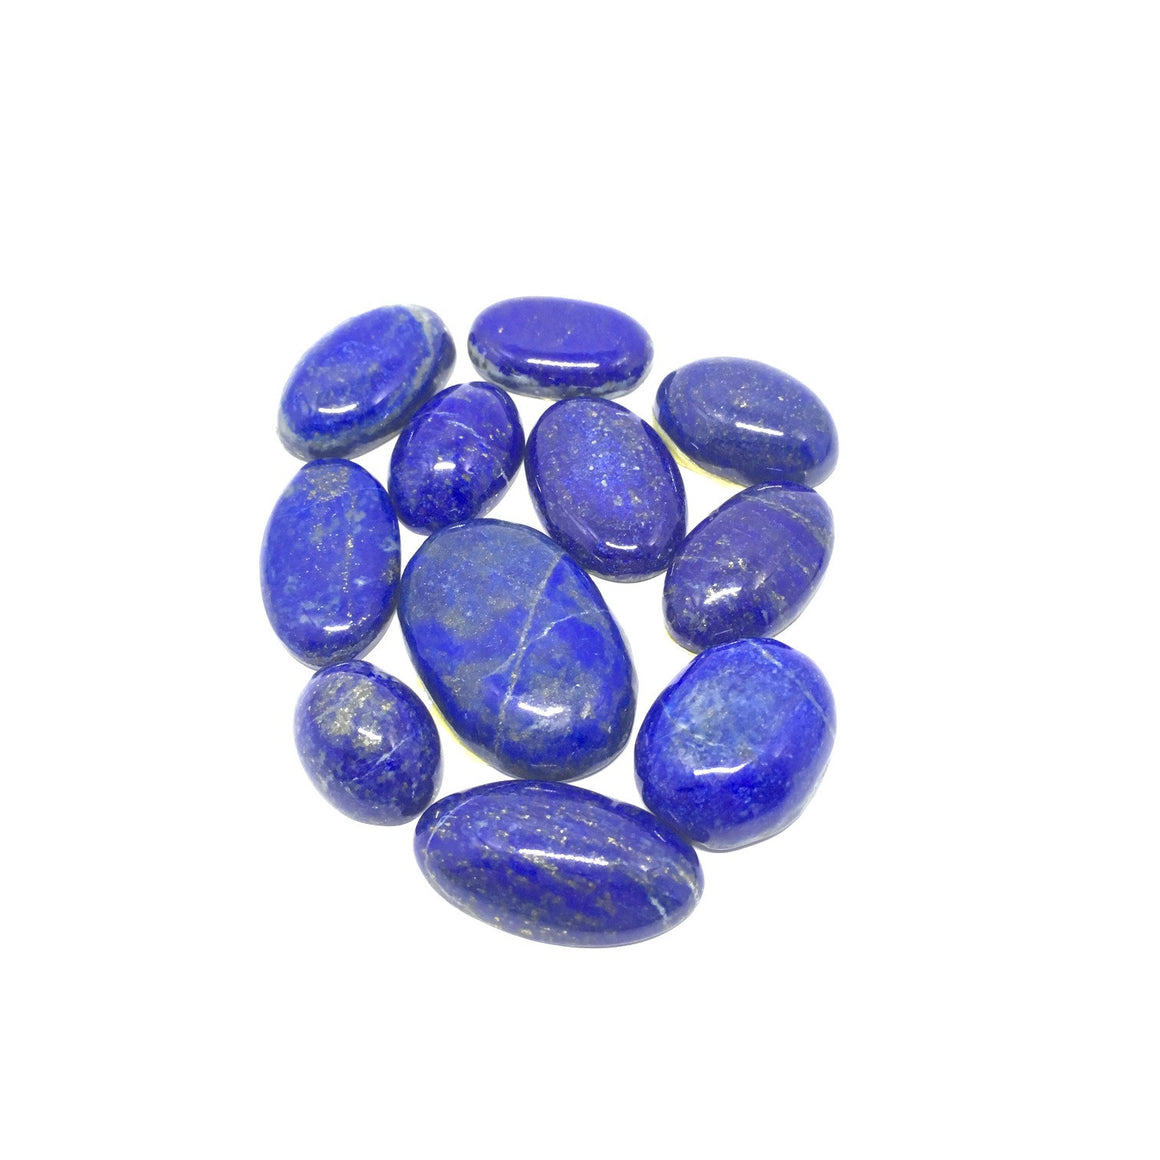 Lapis Lazuli Cabochon - Lapis Cabochon For Ring Oval Cut - 422.60 Carat